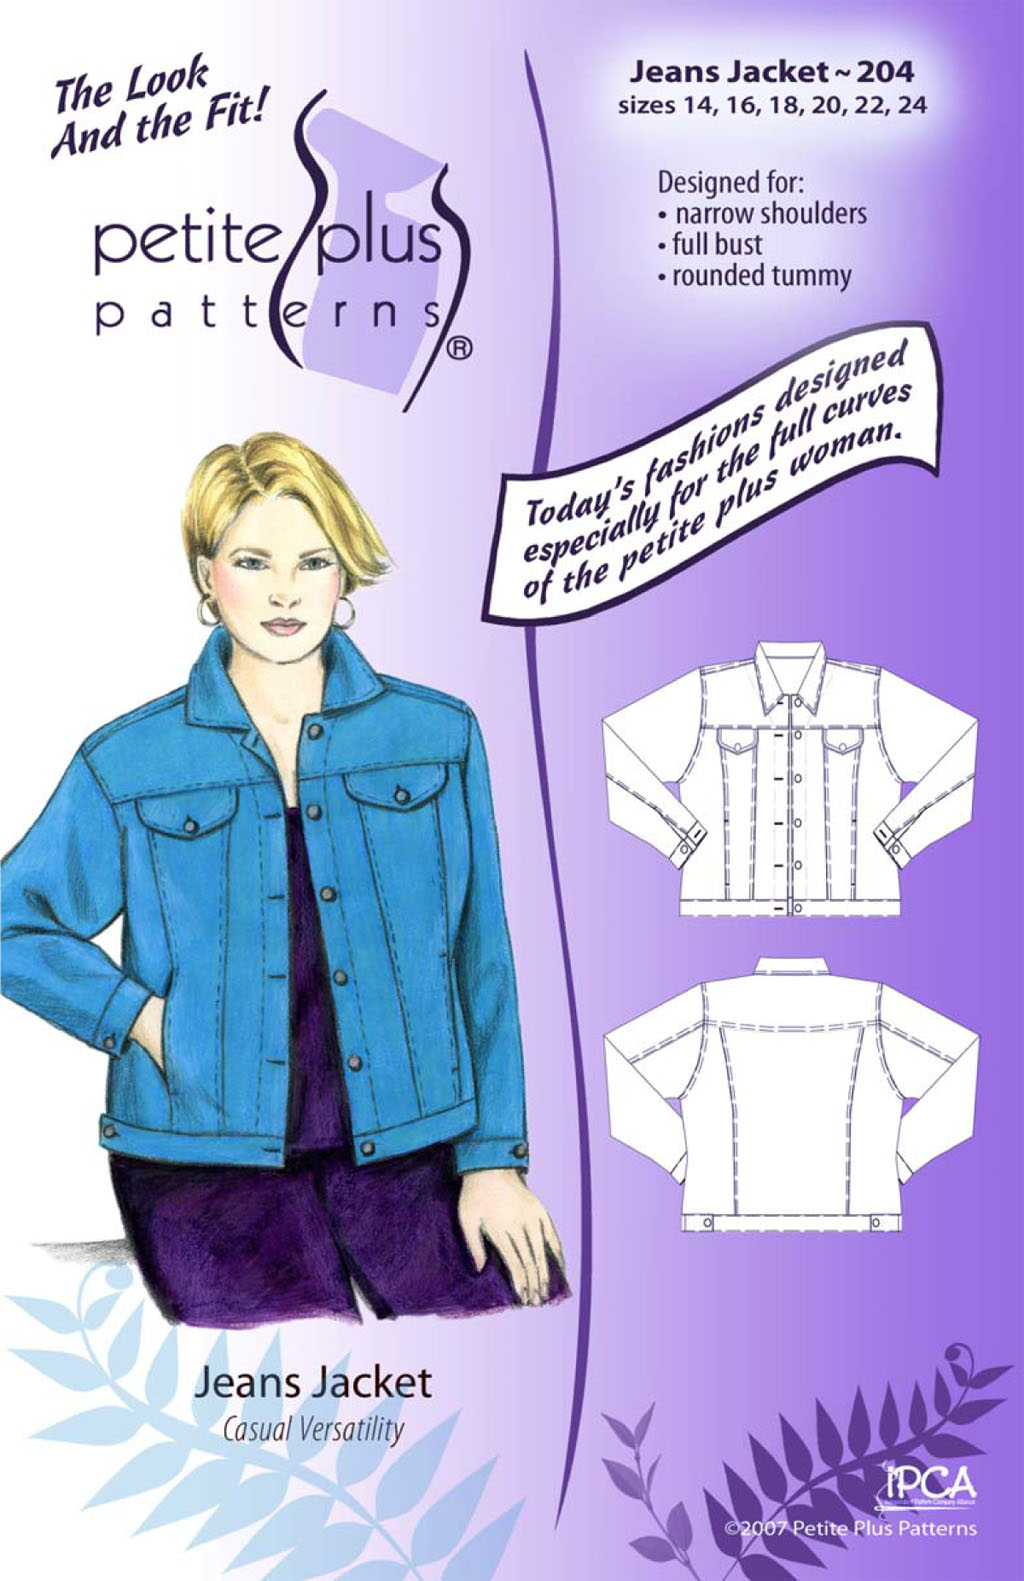 Petite Plus Patterns Jeans Jacket 204